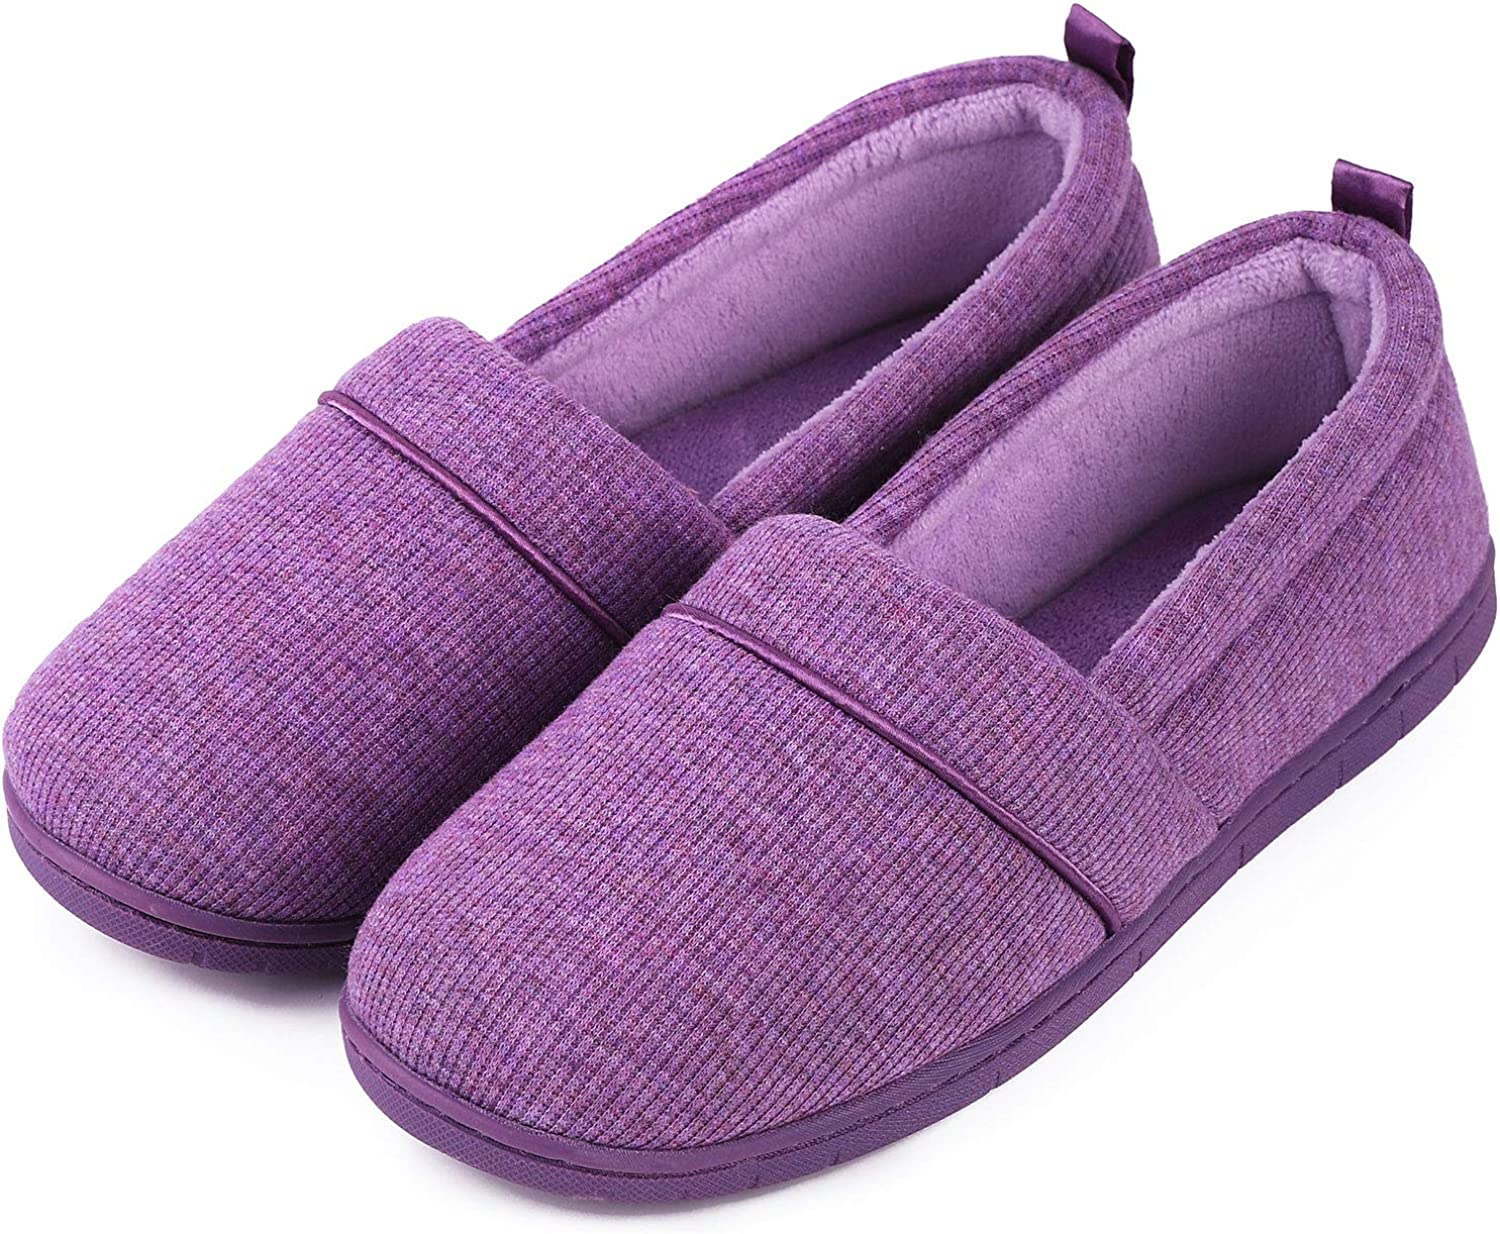 Women's Comfort Cotton Knit Memory Foam House Shoes Light Weight Terry Cloth Loafer Slippers